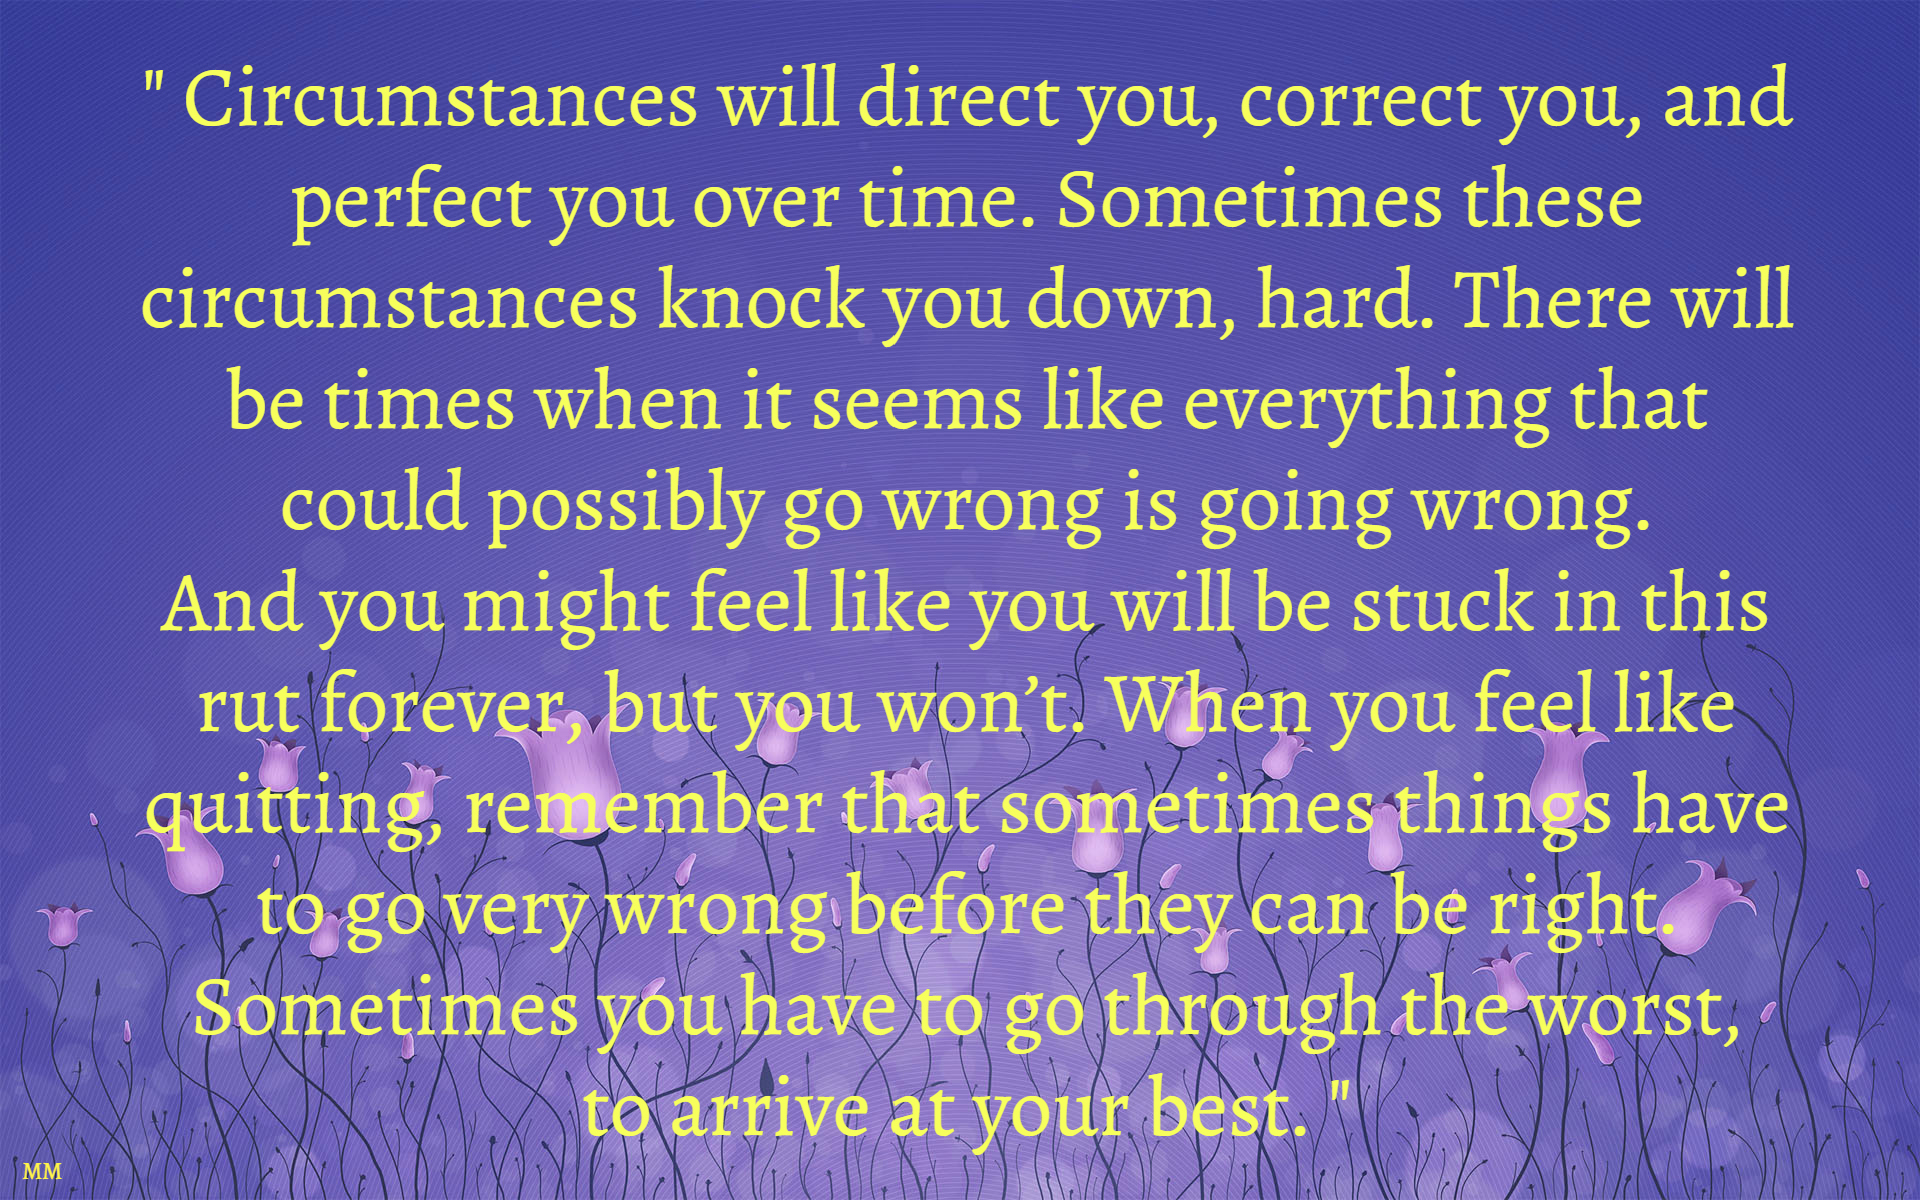 Circumstances will direct you, correct you, and perfect you over time. Sometimes these circumstances knock you down, hard. There will be...